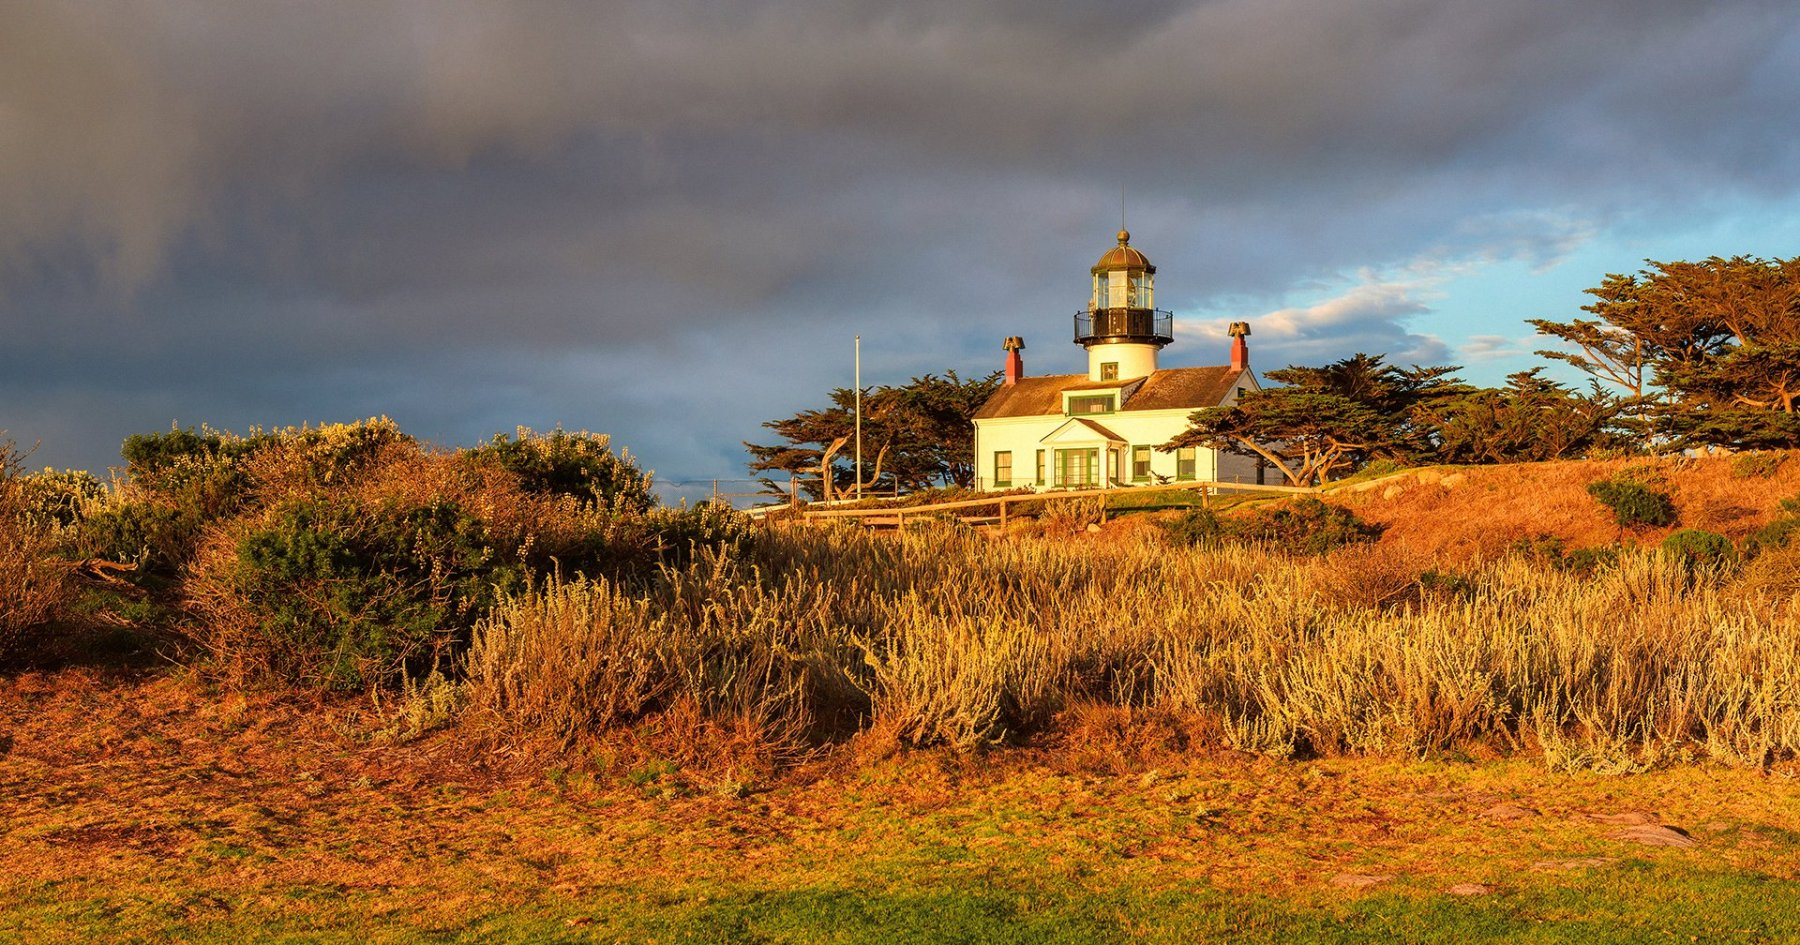 Old Northern California Towns for an Ideal Fall Getaway